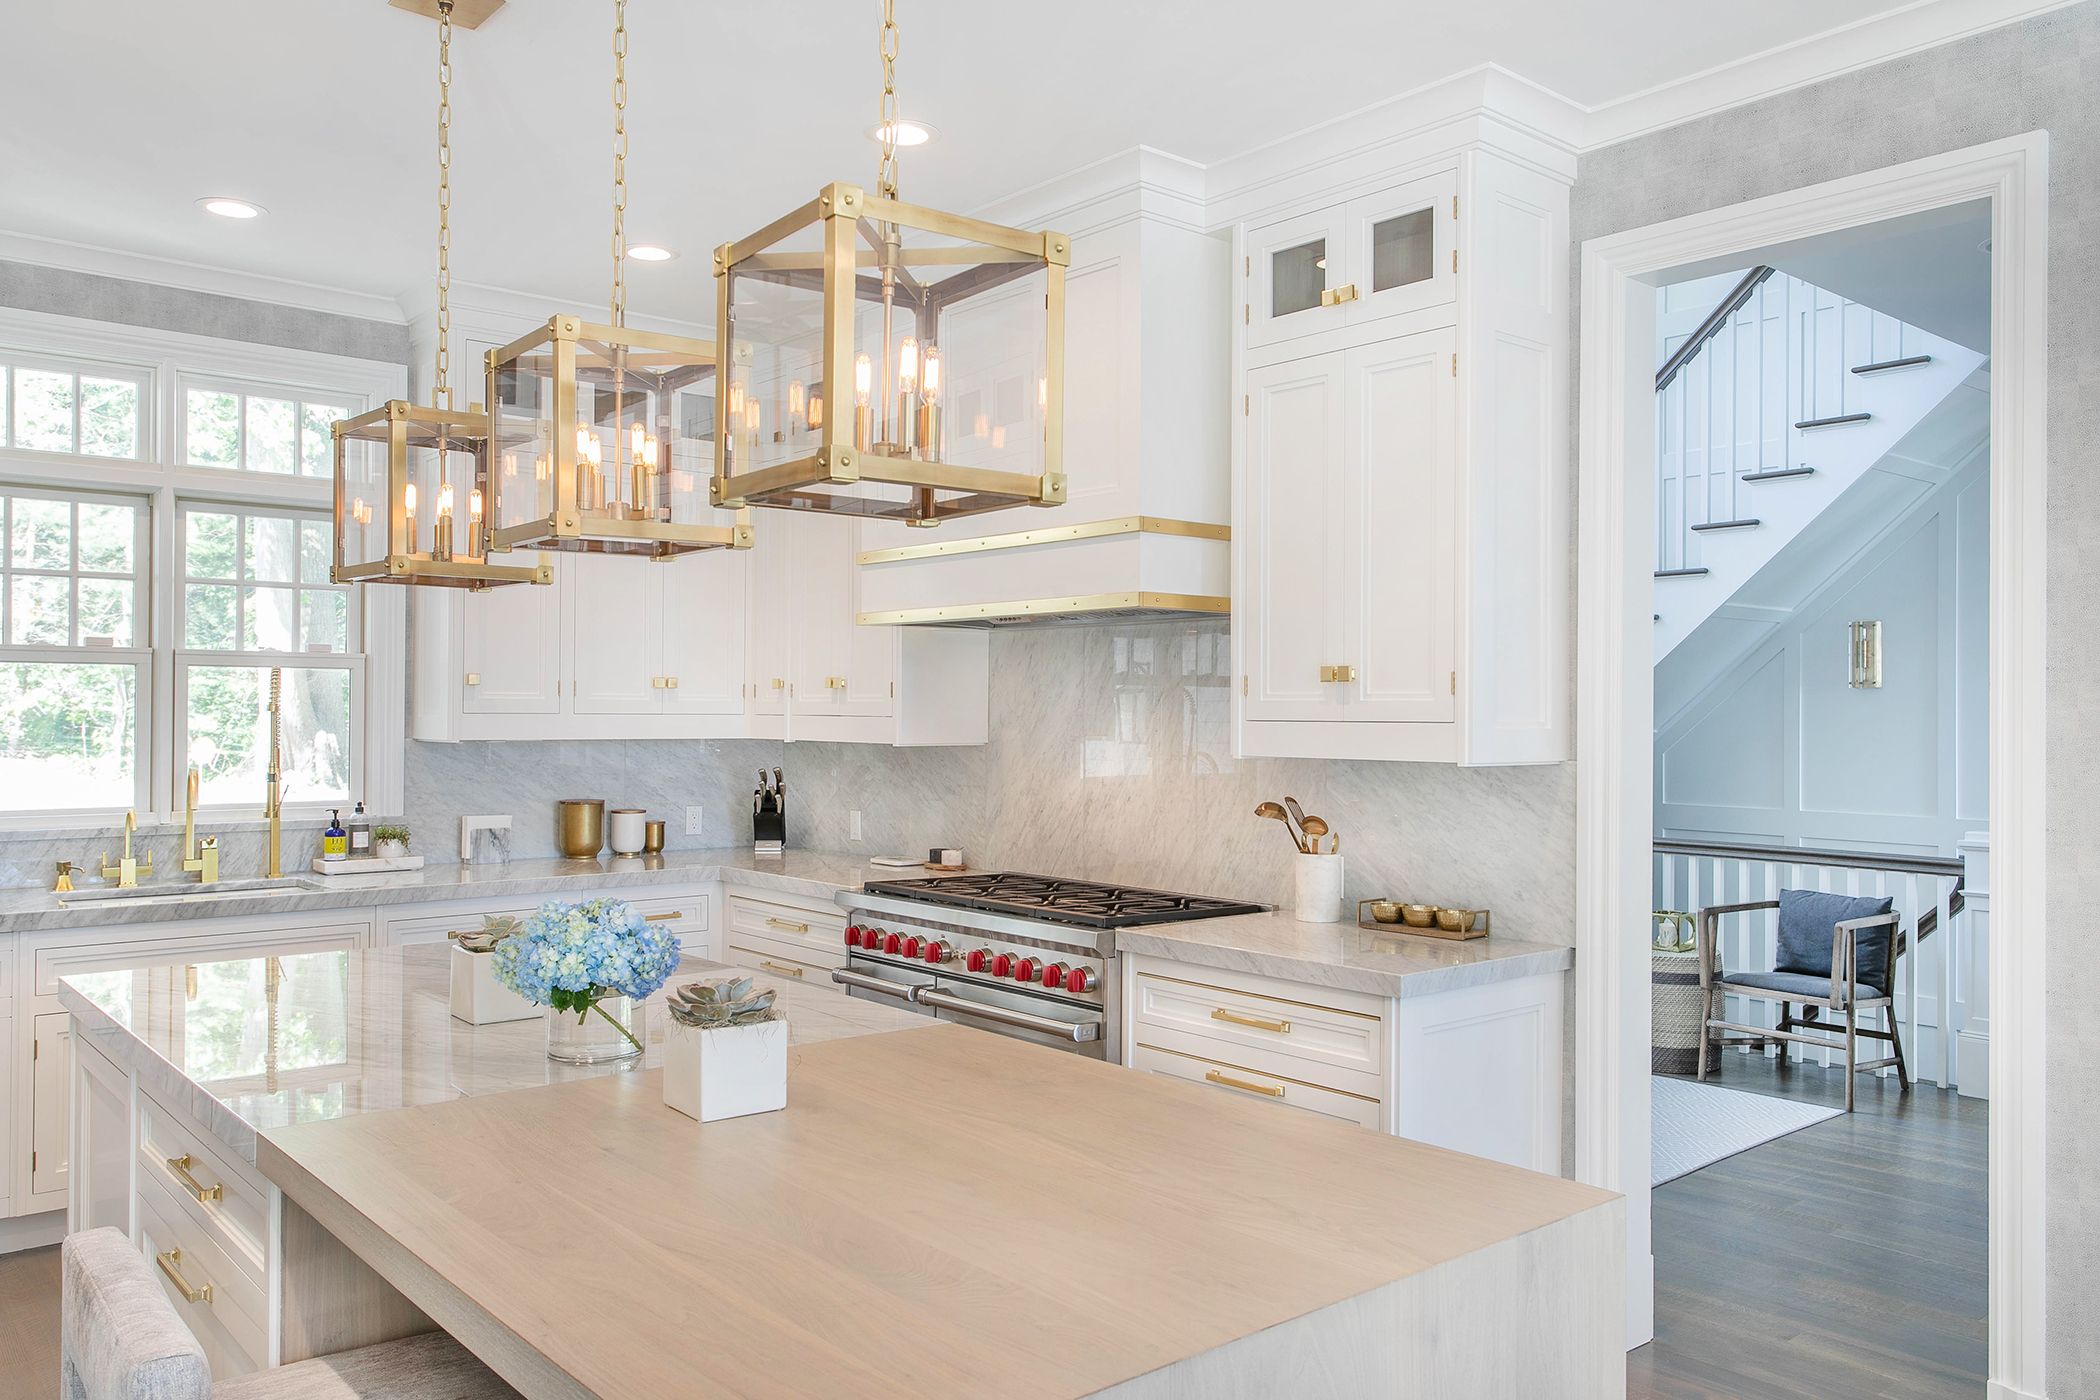 Kitchen designed by Bakes & Kropp in collaboration with Diane Guariglia of Dyfari Interiors. COURTESY BAKES & KROPP